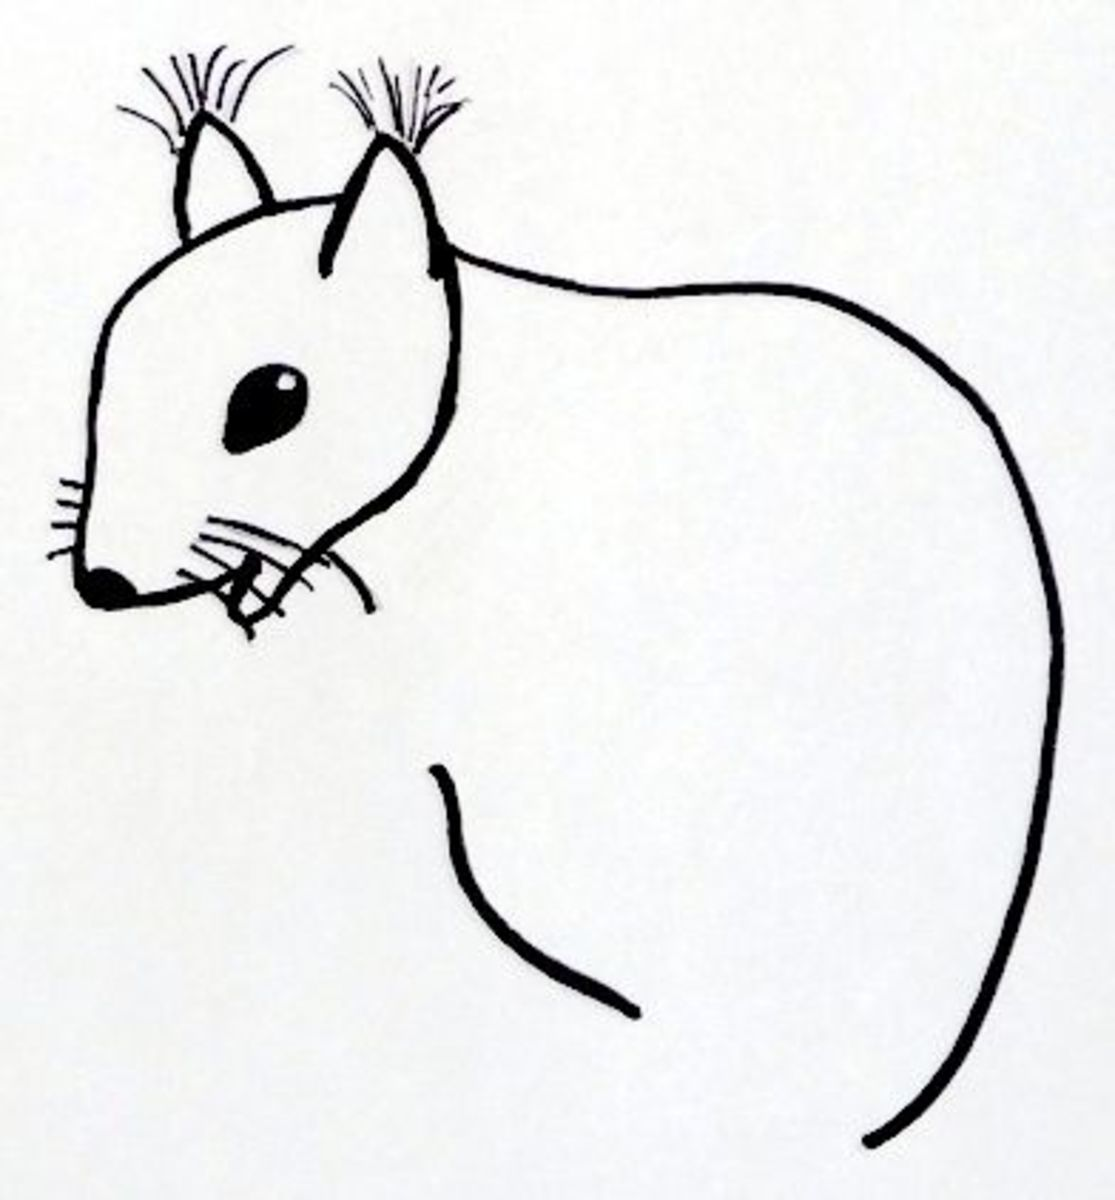 Step 6: This is going to be squirrel's body.